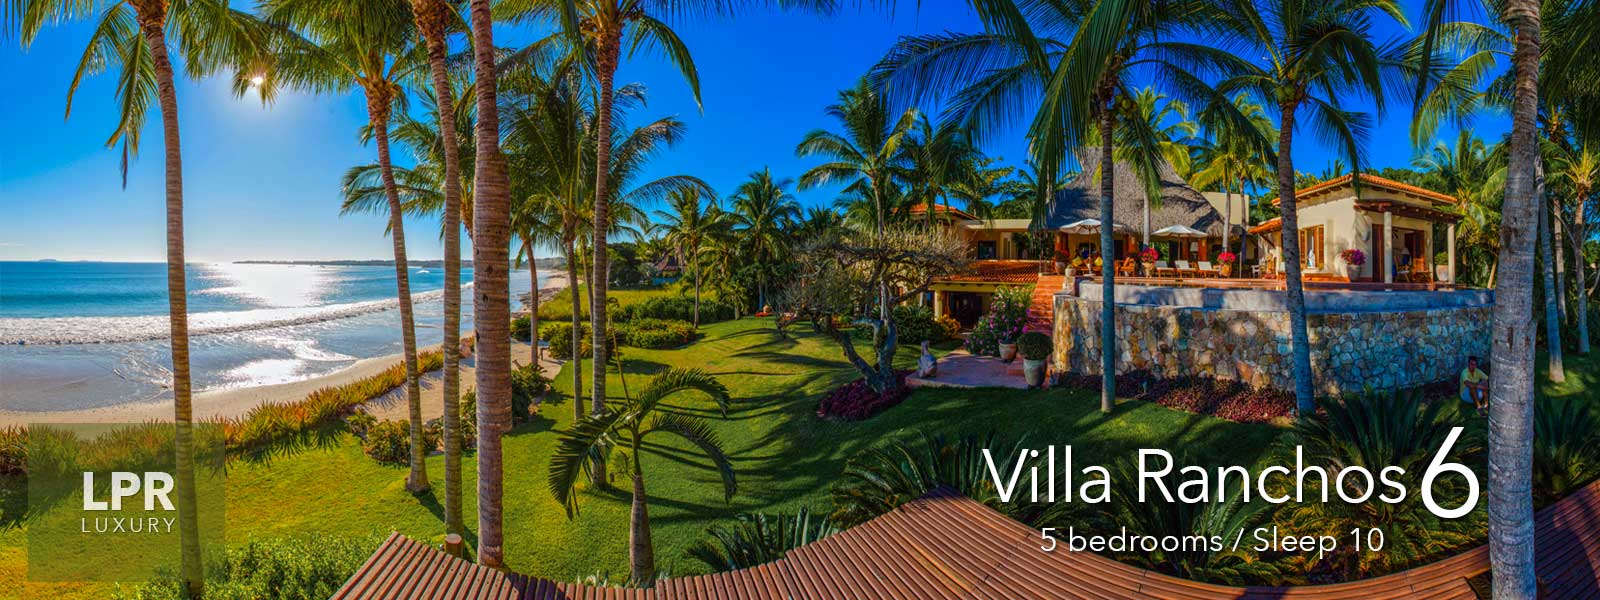 Villa Ranchos 6 - Luxury beachfront vacation villa at the Punta Mita Resort - home of the Four Seasons / St. Regis Punta Mita Mexico